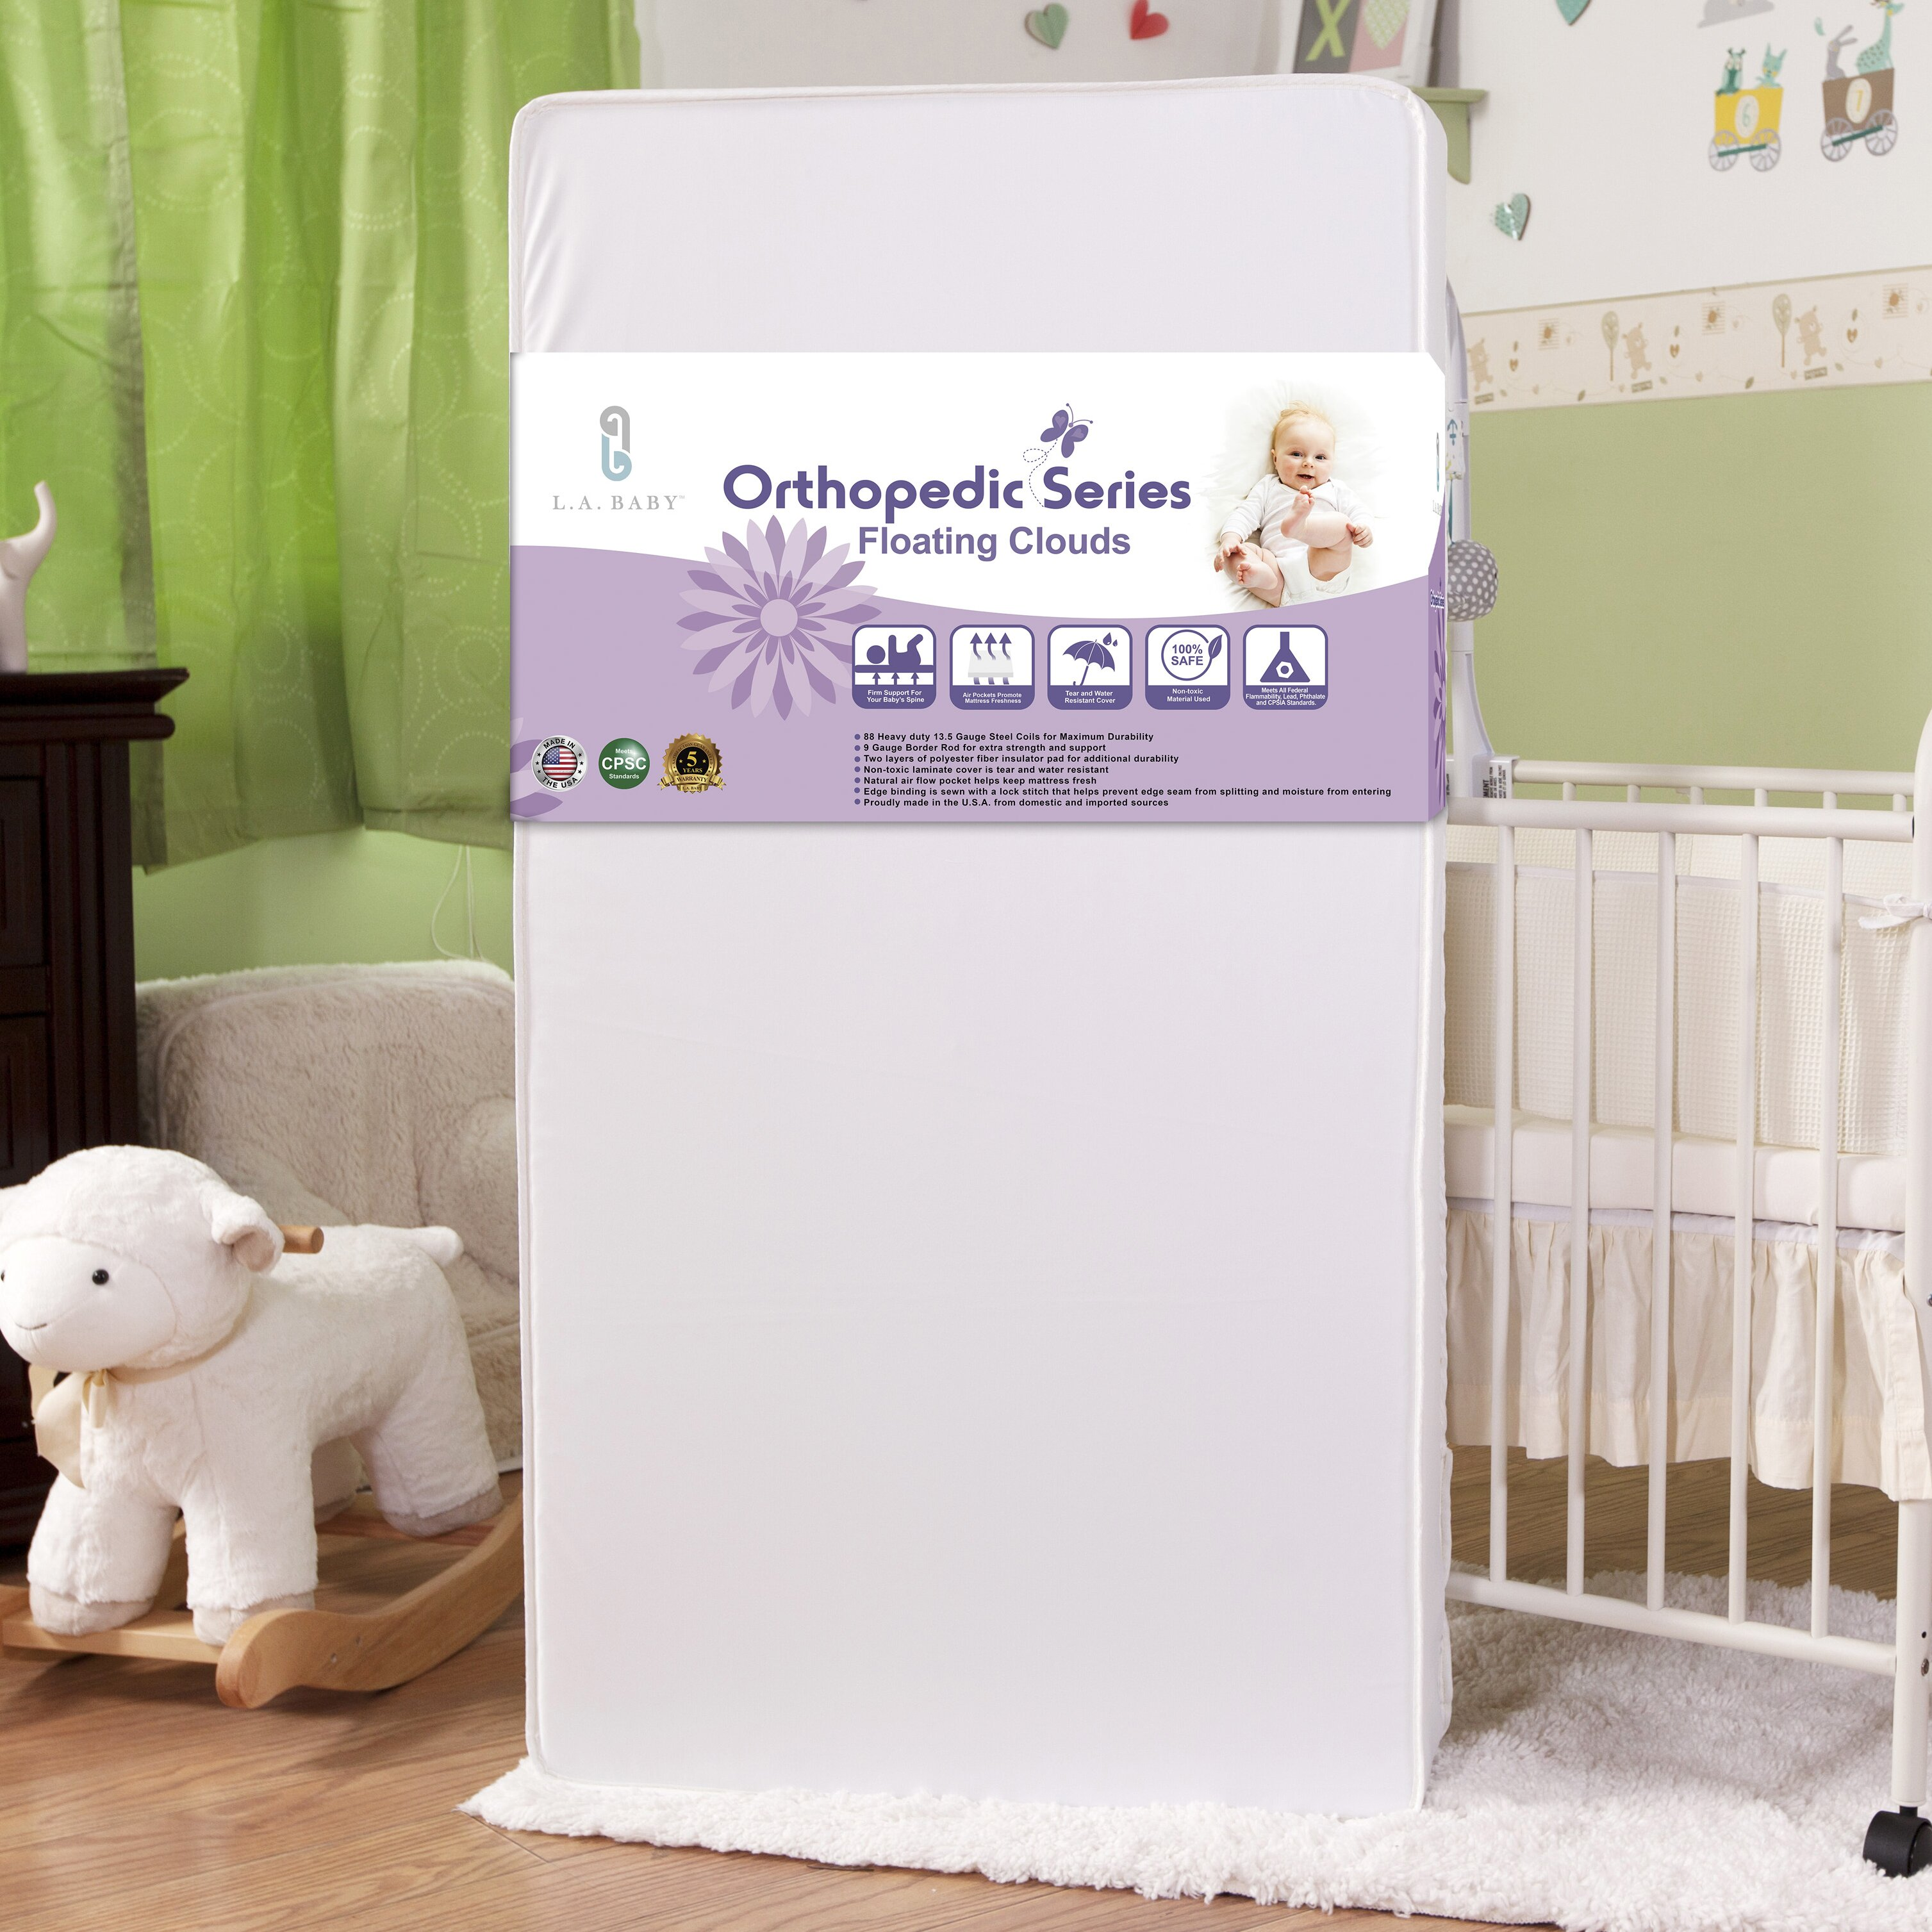 Best baby crib mattress 2013 - L A Baby Floating Clouds Crib Mattress